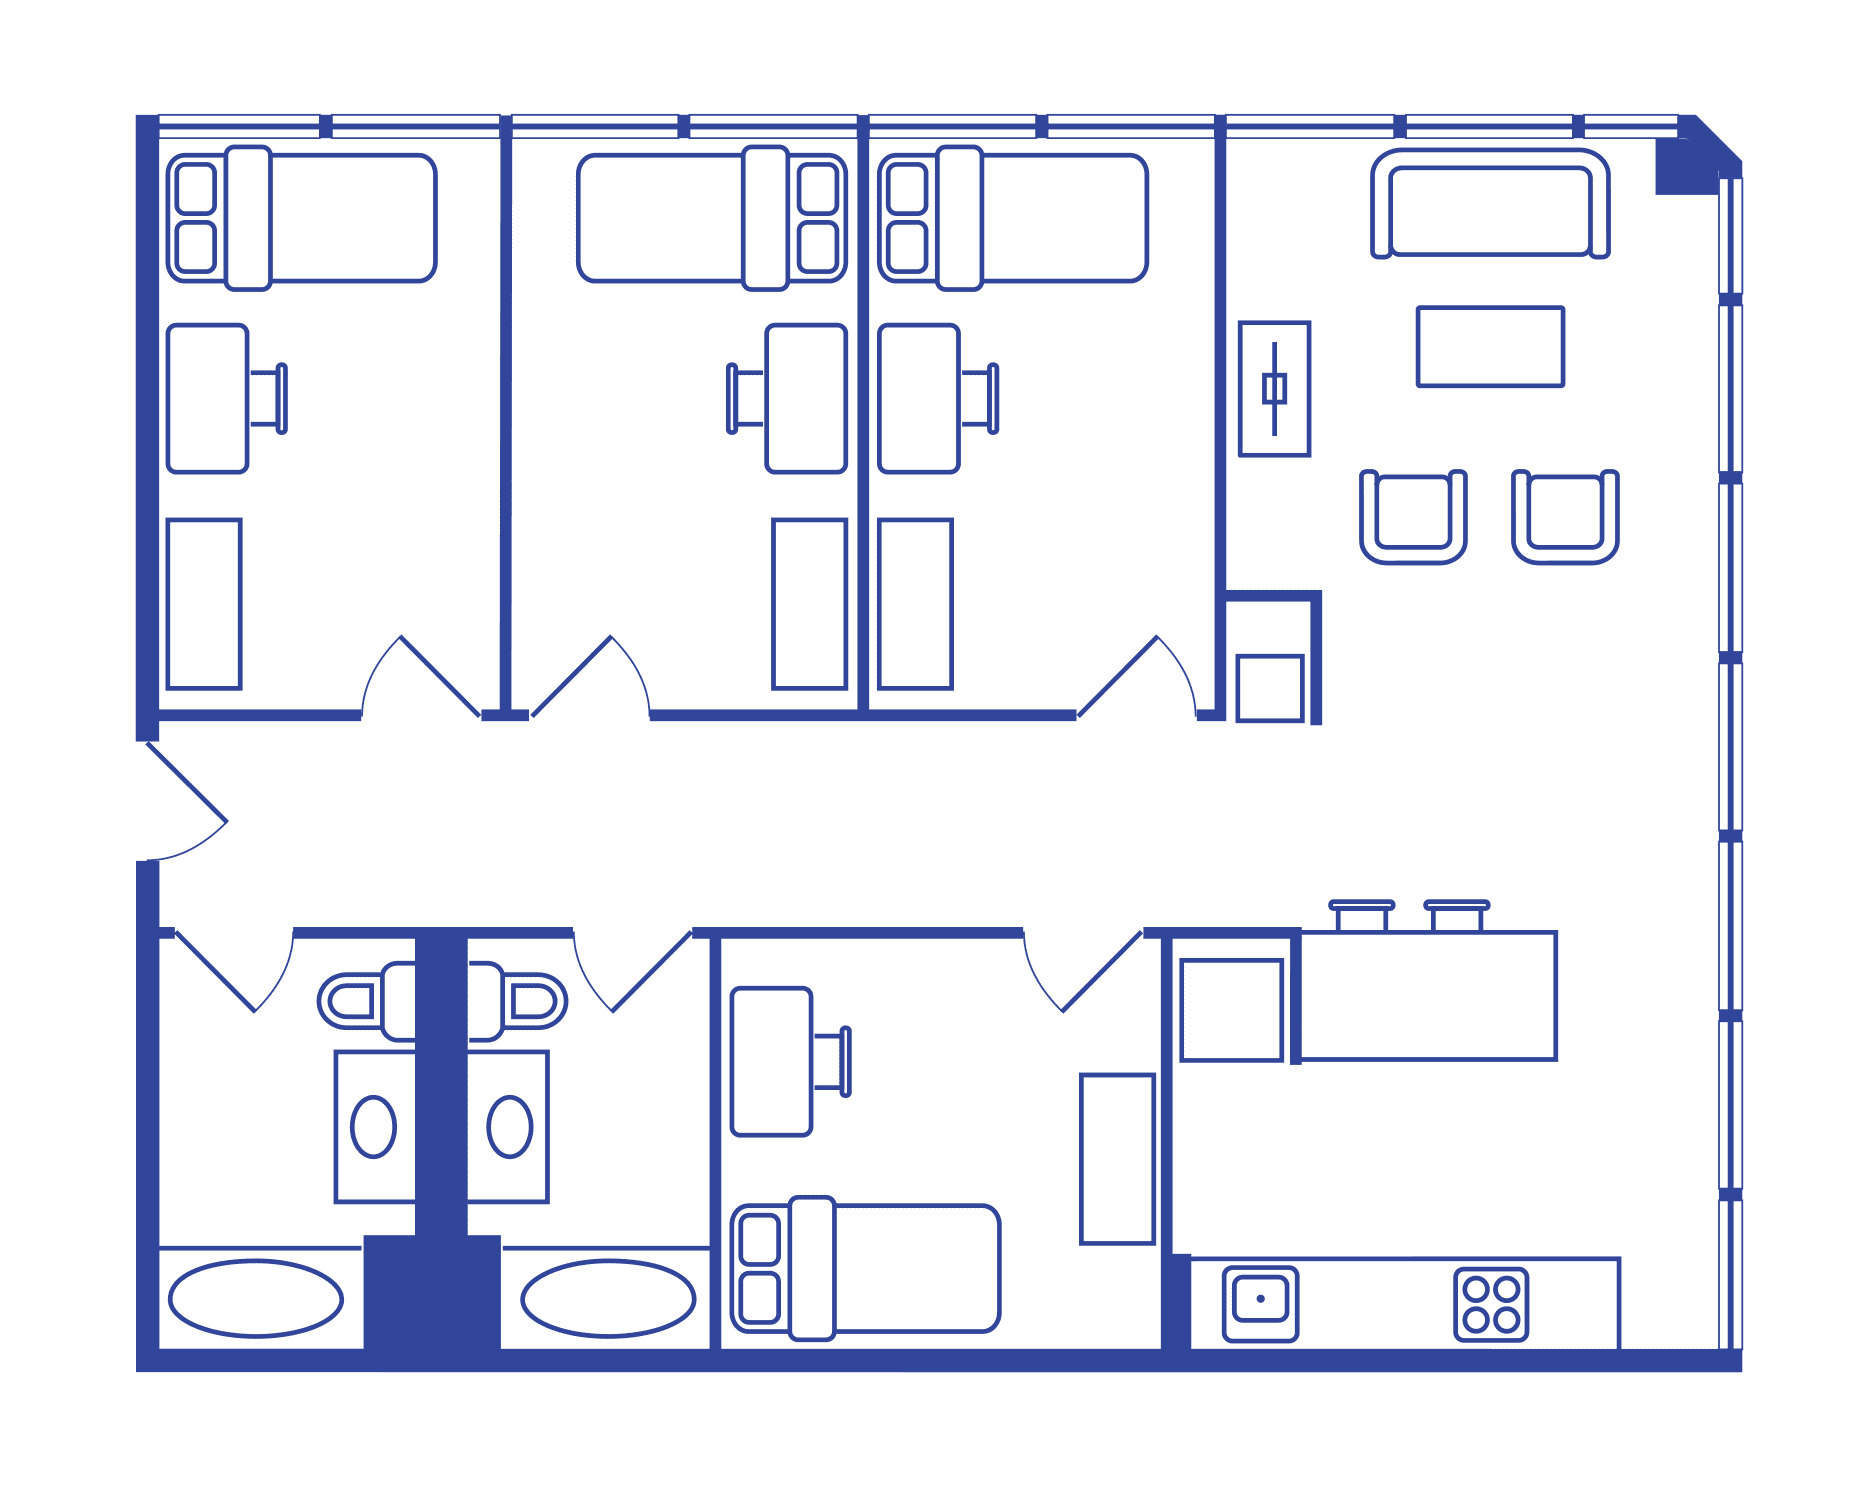 4 Bedroom Floorplan 2